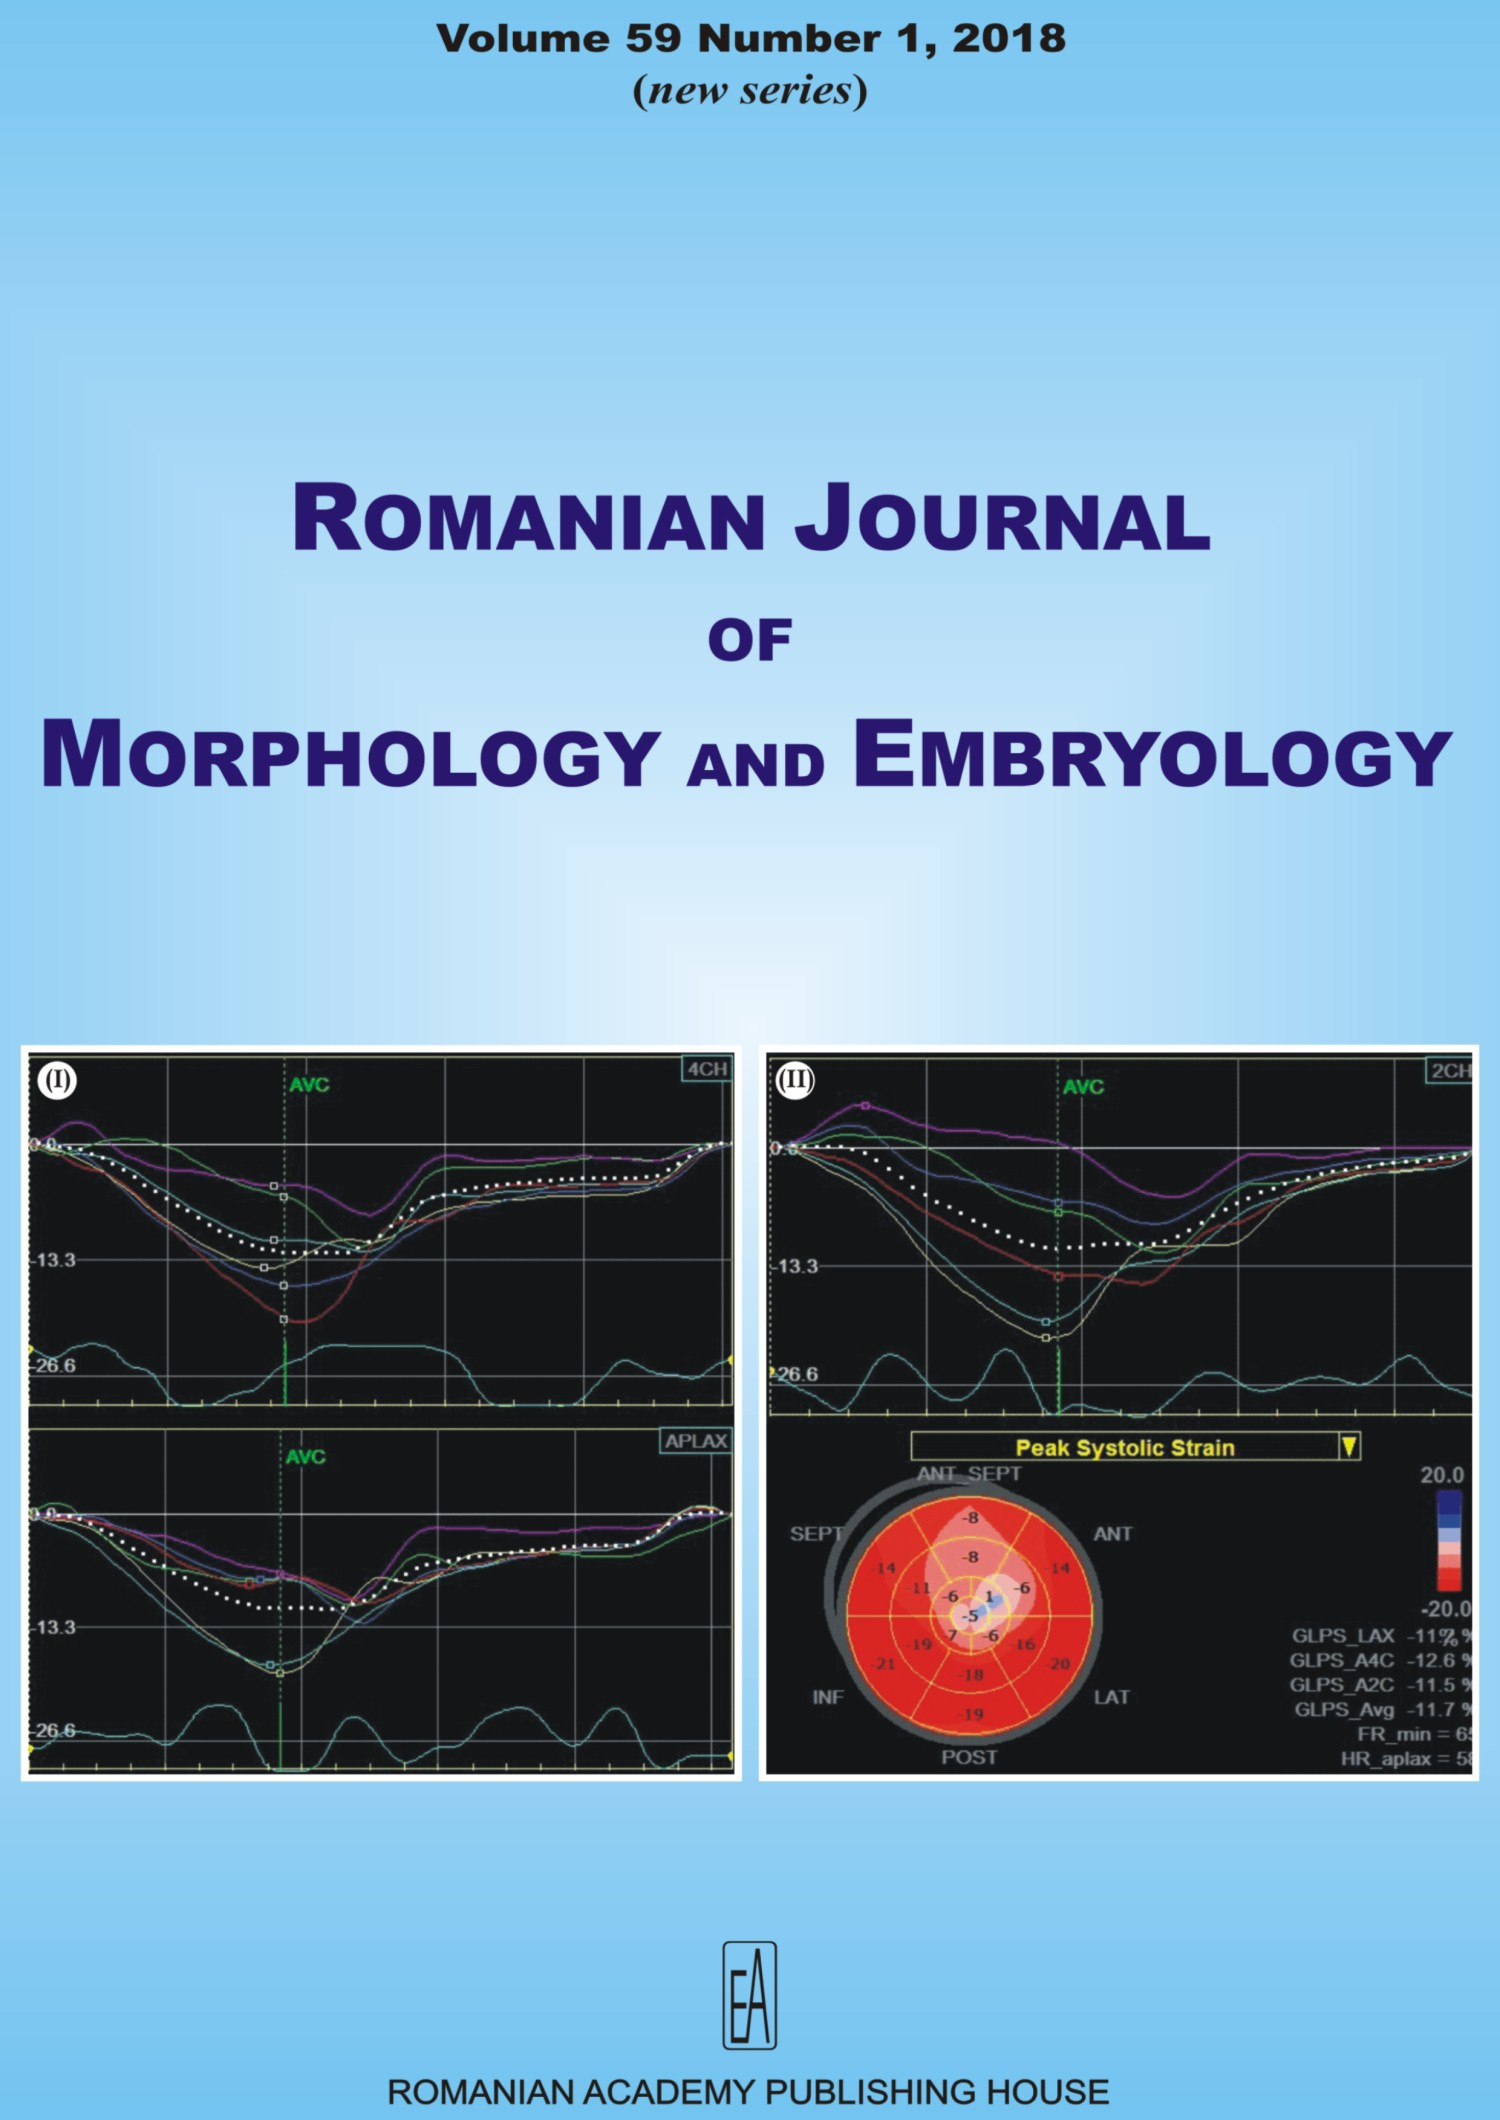 Romanian Journal of Morphology and Embryology, vol. 59 no. 1, 2018